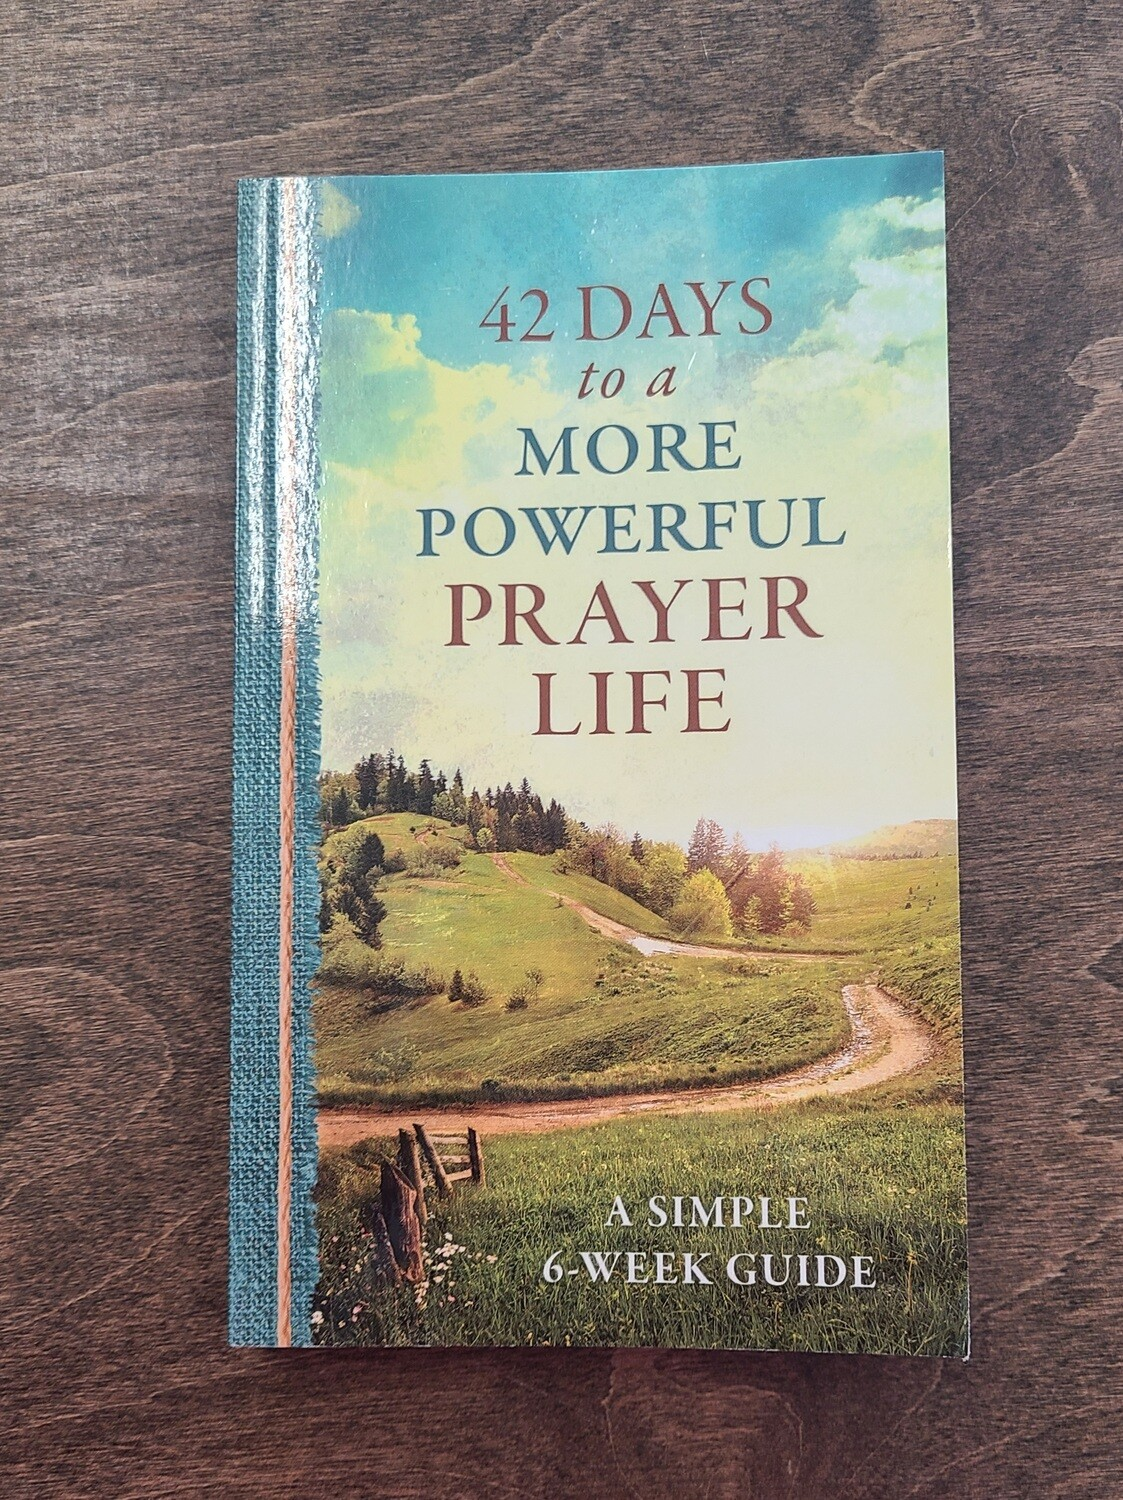 42 Days to a More Powerful Prayer Life by Glenn Hascall